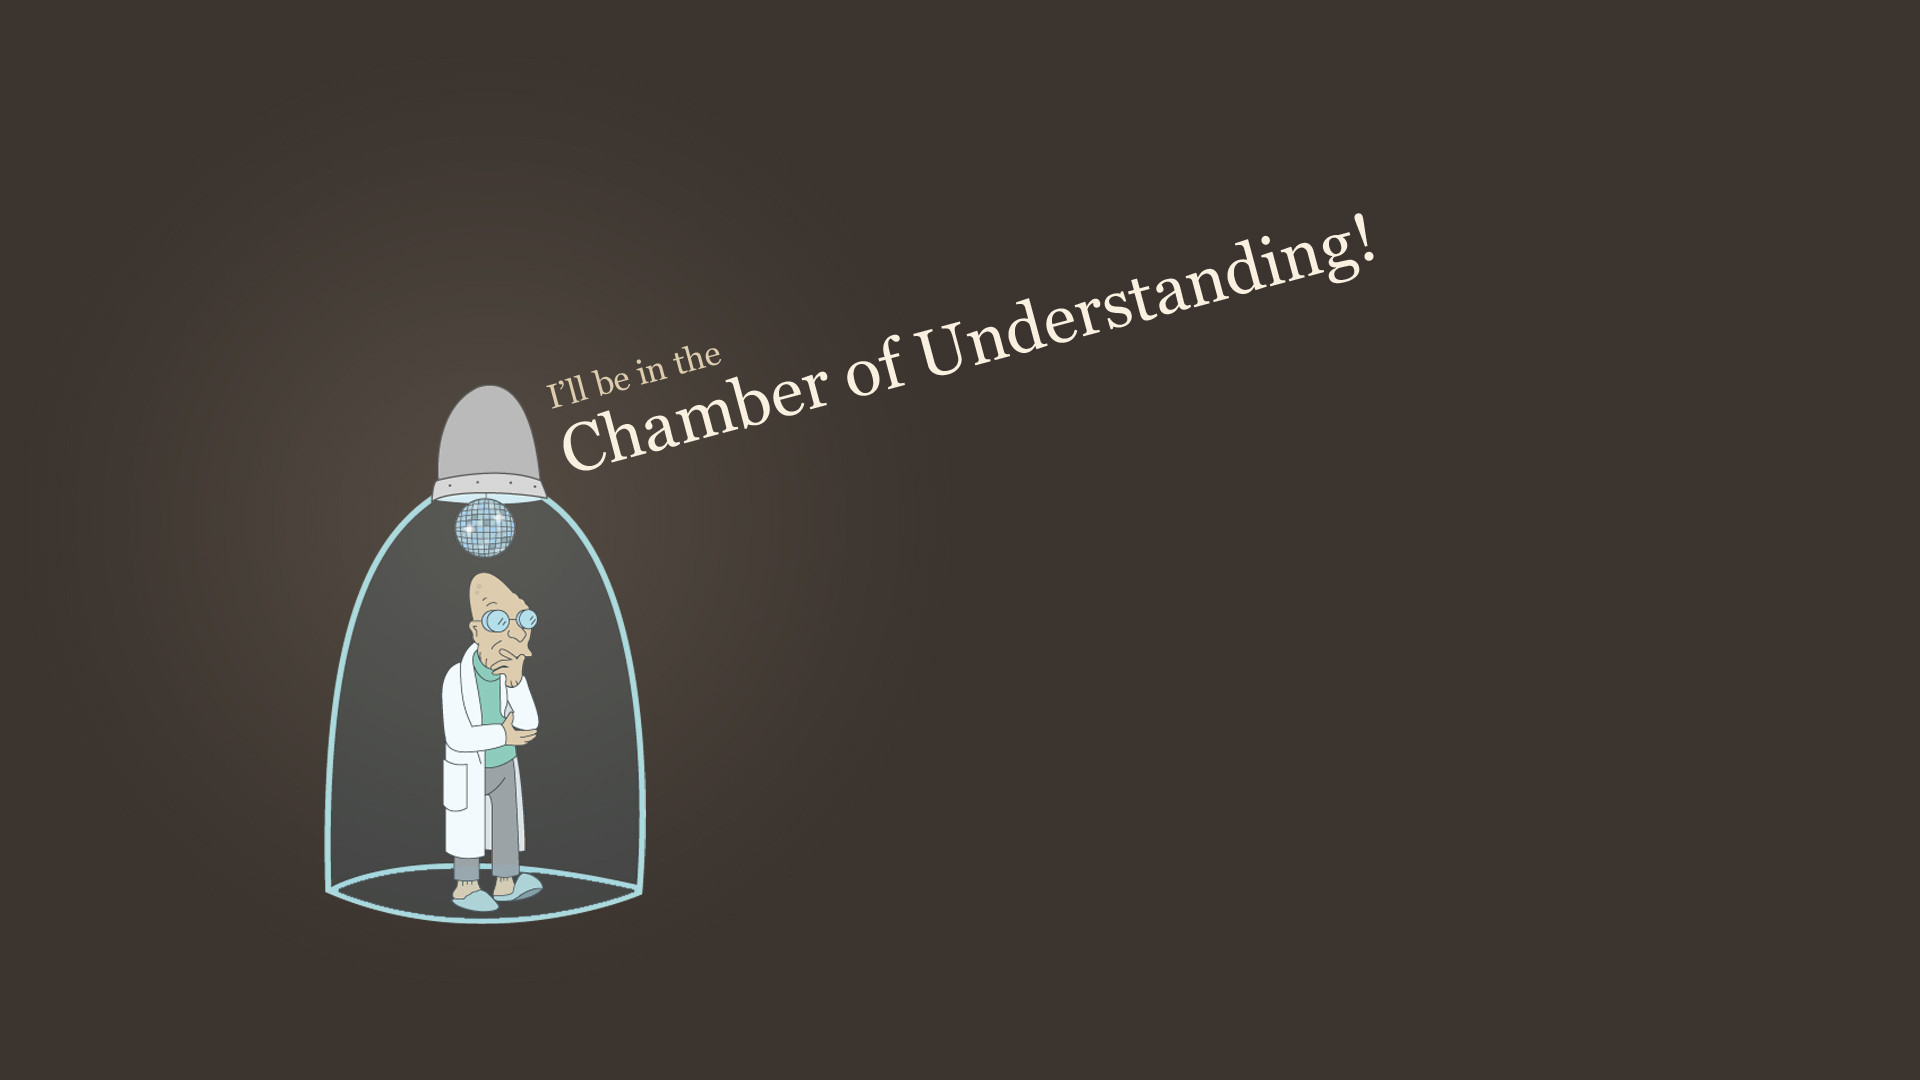 1920x1080 I'll be in the Chamber of Understanding!